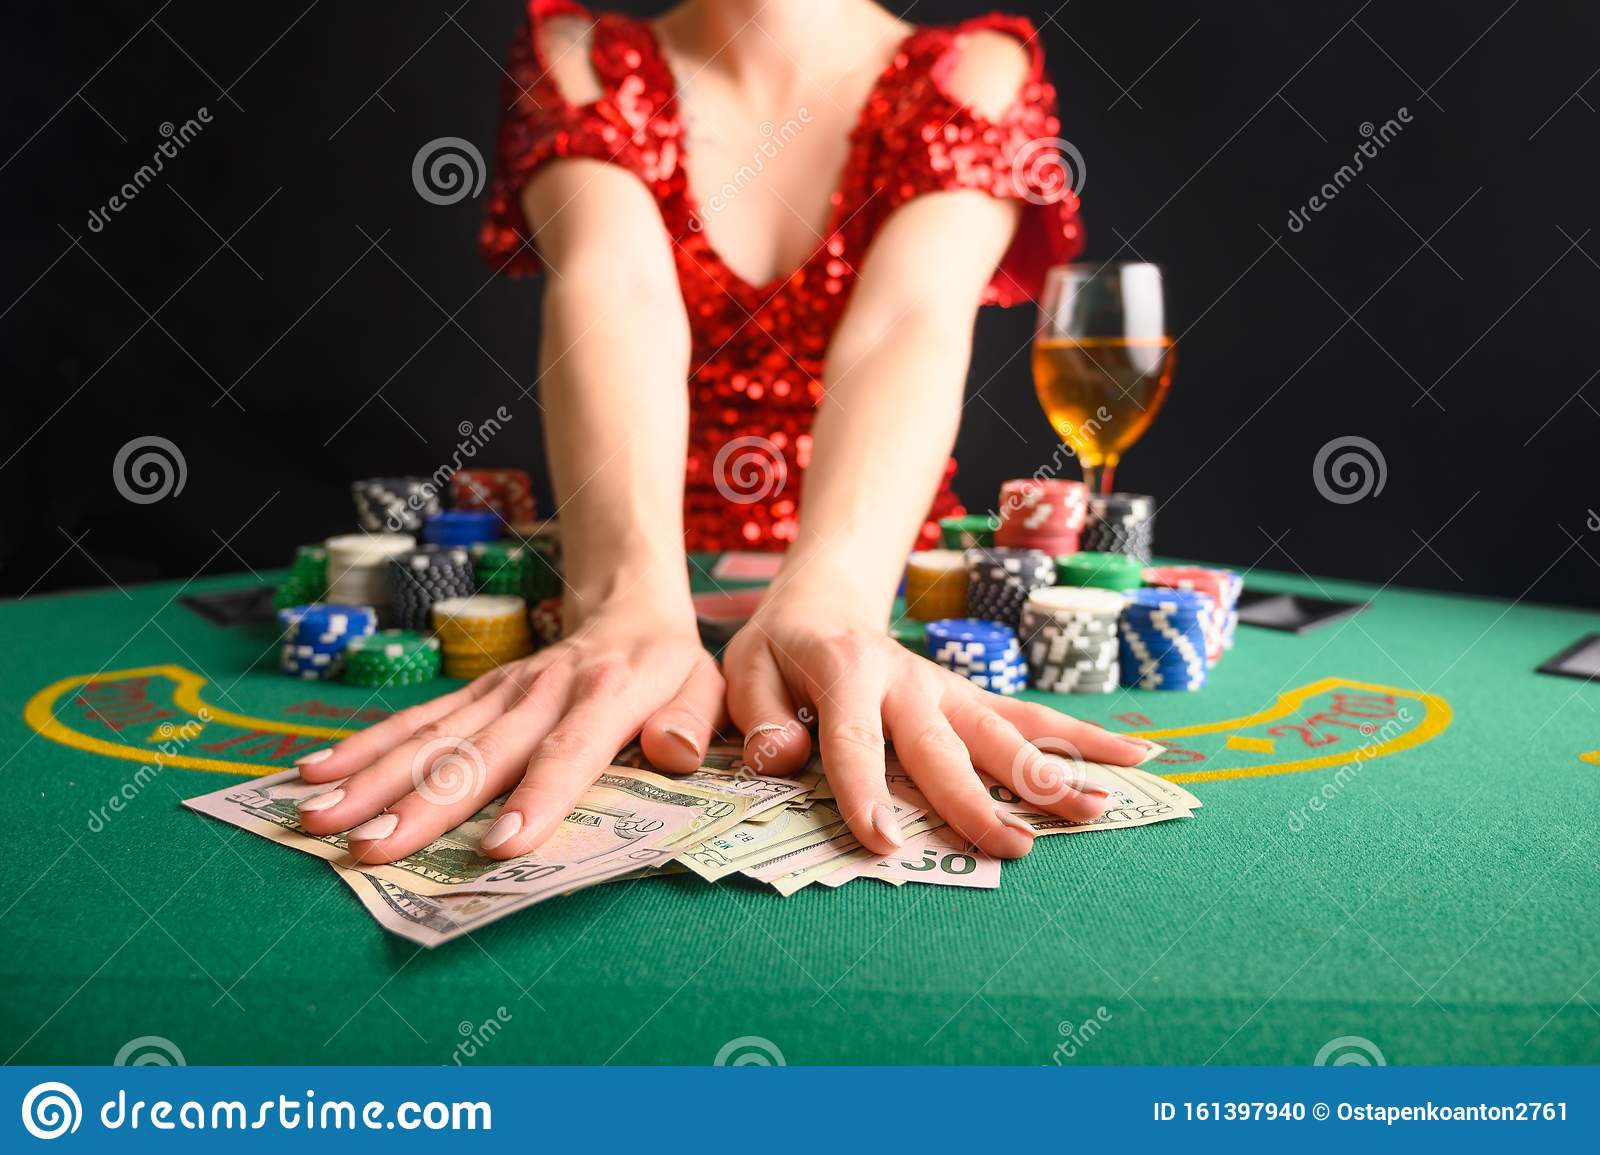 A Girl Wins Cards In A Casino And Takes Away Wins Money Dollars Blackjack Poker Texas Poker Gaming Business Stock Photo Image Of Gambling Chance 161397940